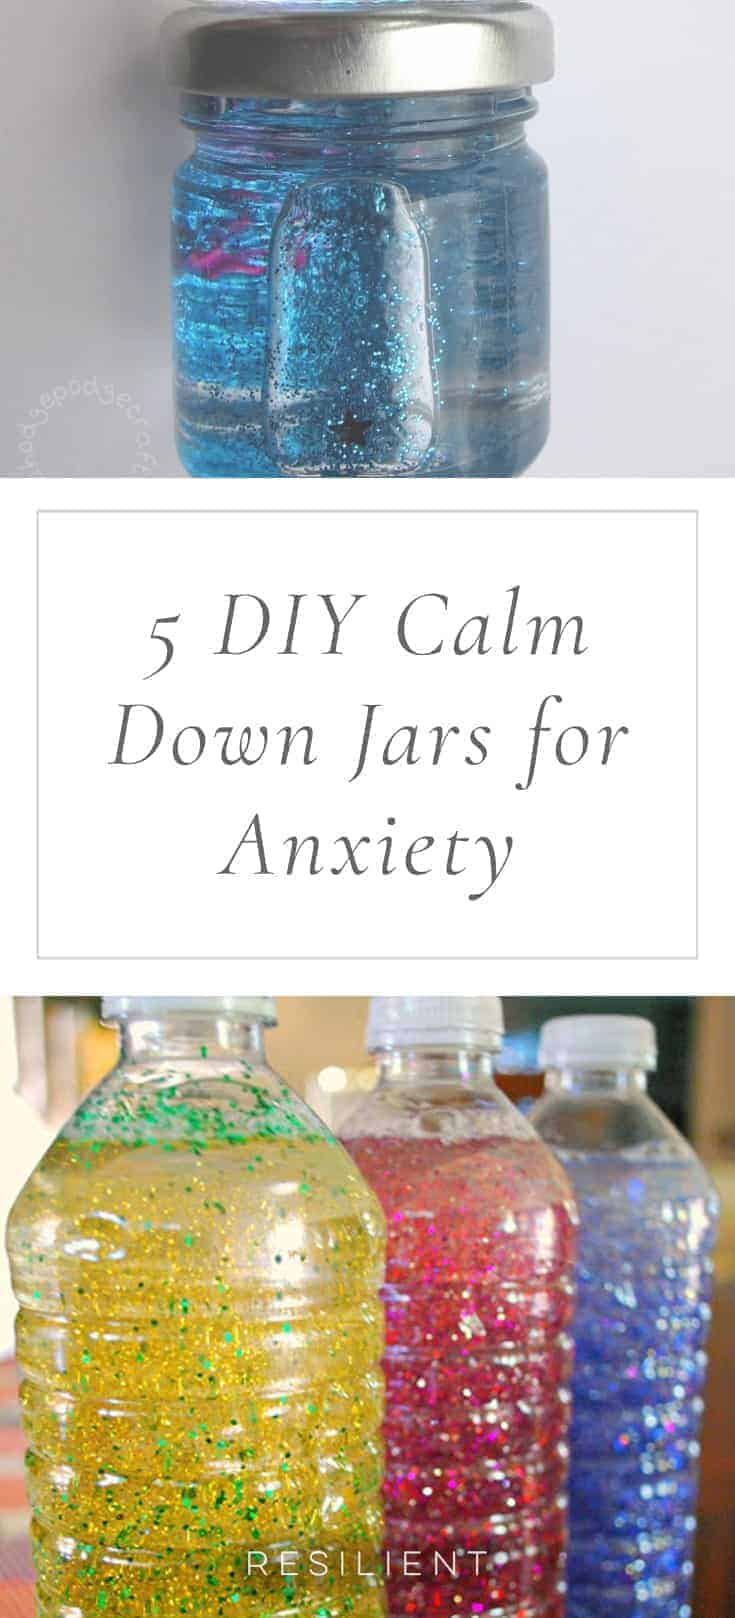 """I saw a cool project the other day called """"calm jars,"""" """"calm down jars,"""" or a """"mindfulness jar,"""" and thought it would be a great craft to do if you have anxiety. Here's how to make a DIY calm down jar for anxiety."""